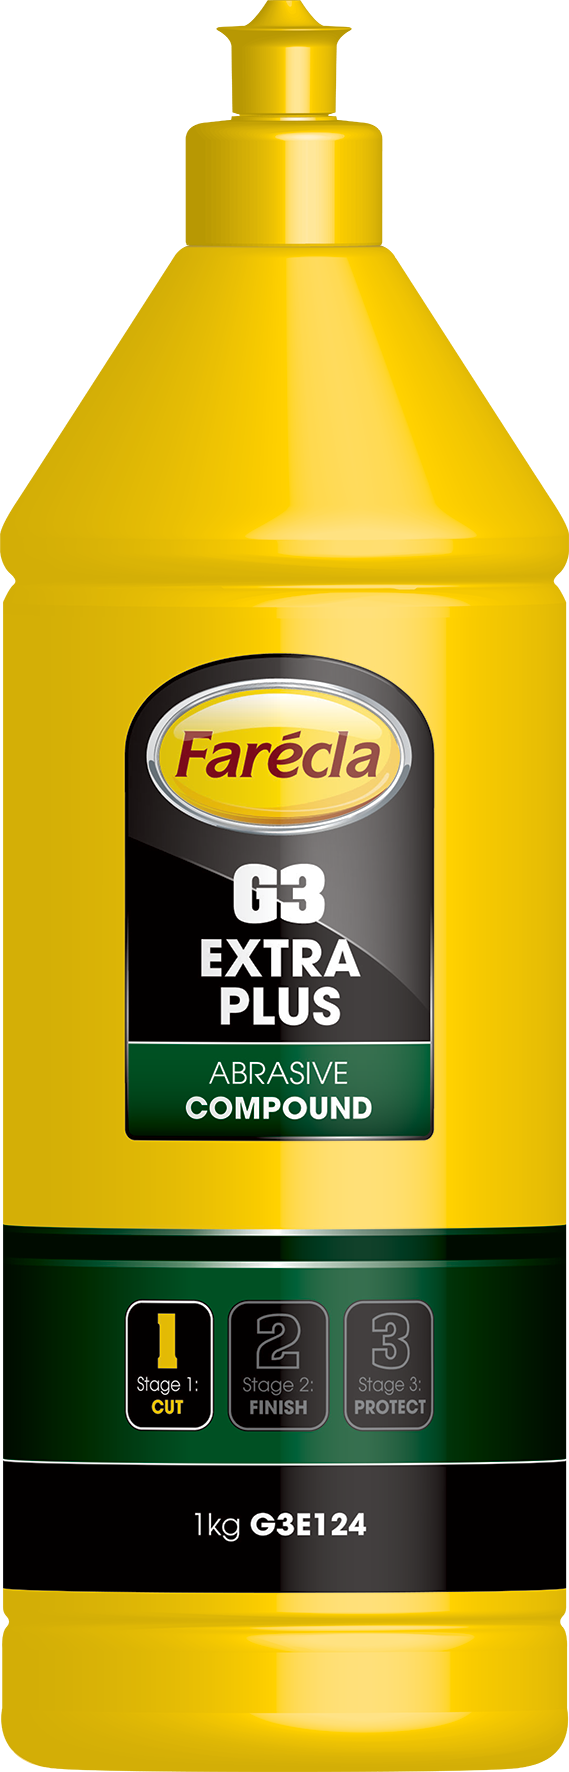 1 KG G3 EXTRA PLUS COMPOUND - Galdes & Mamo